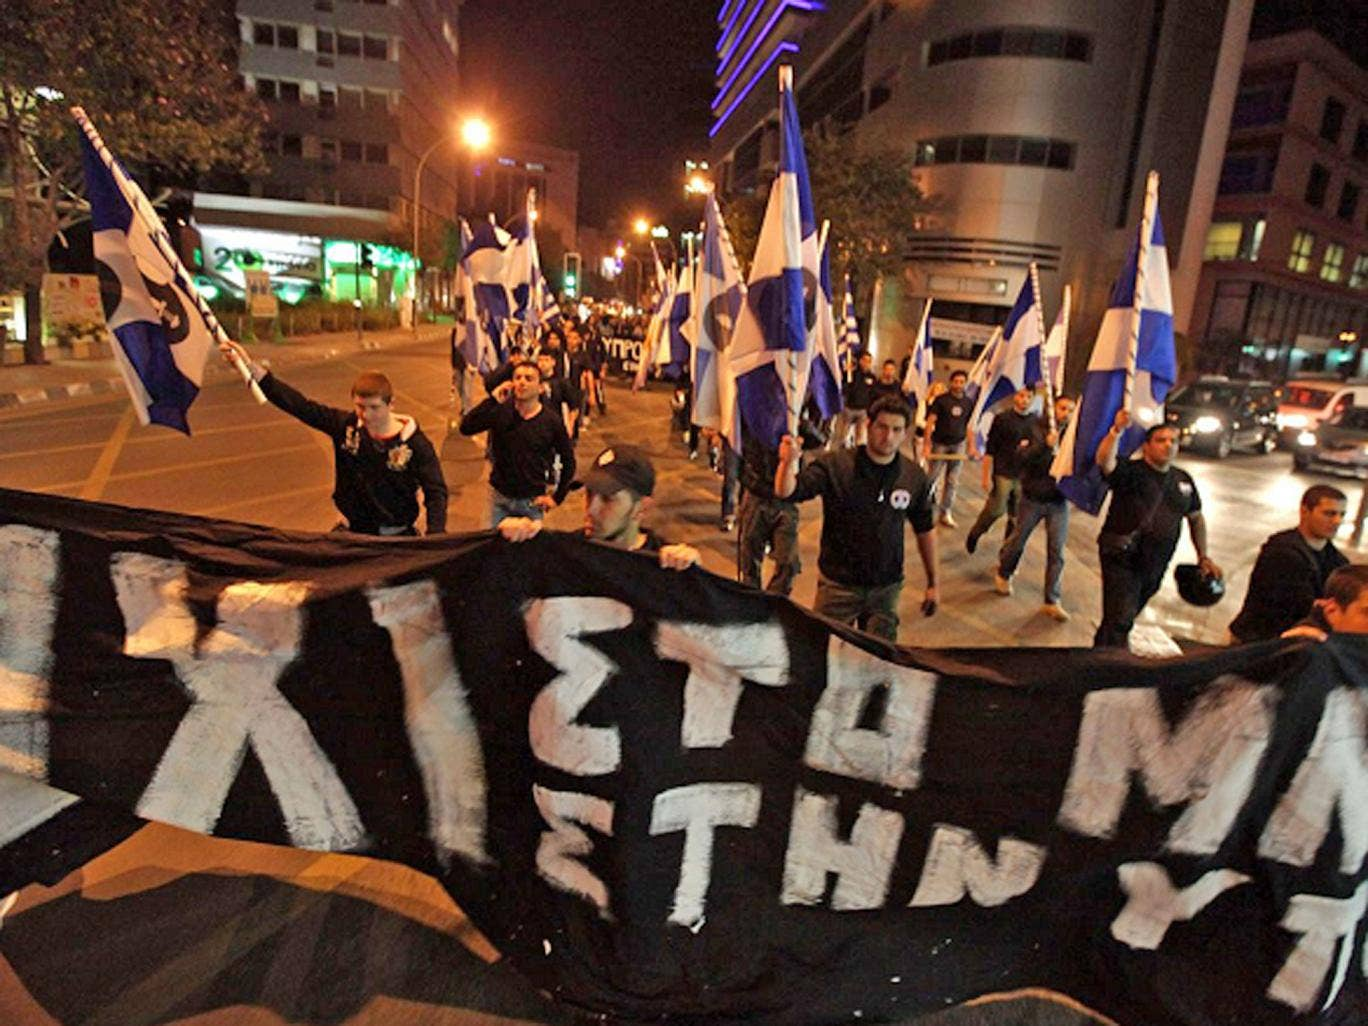 Members of the nationalist Cypriot party Elam (National Popular Front) march with a banner during a protest against the measures imposed on the banking sector